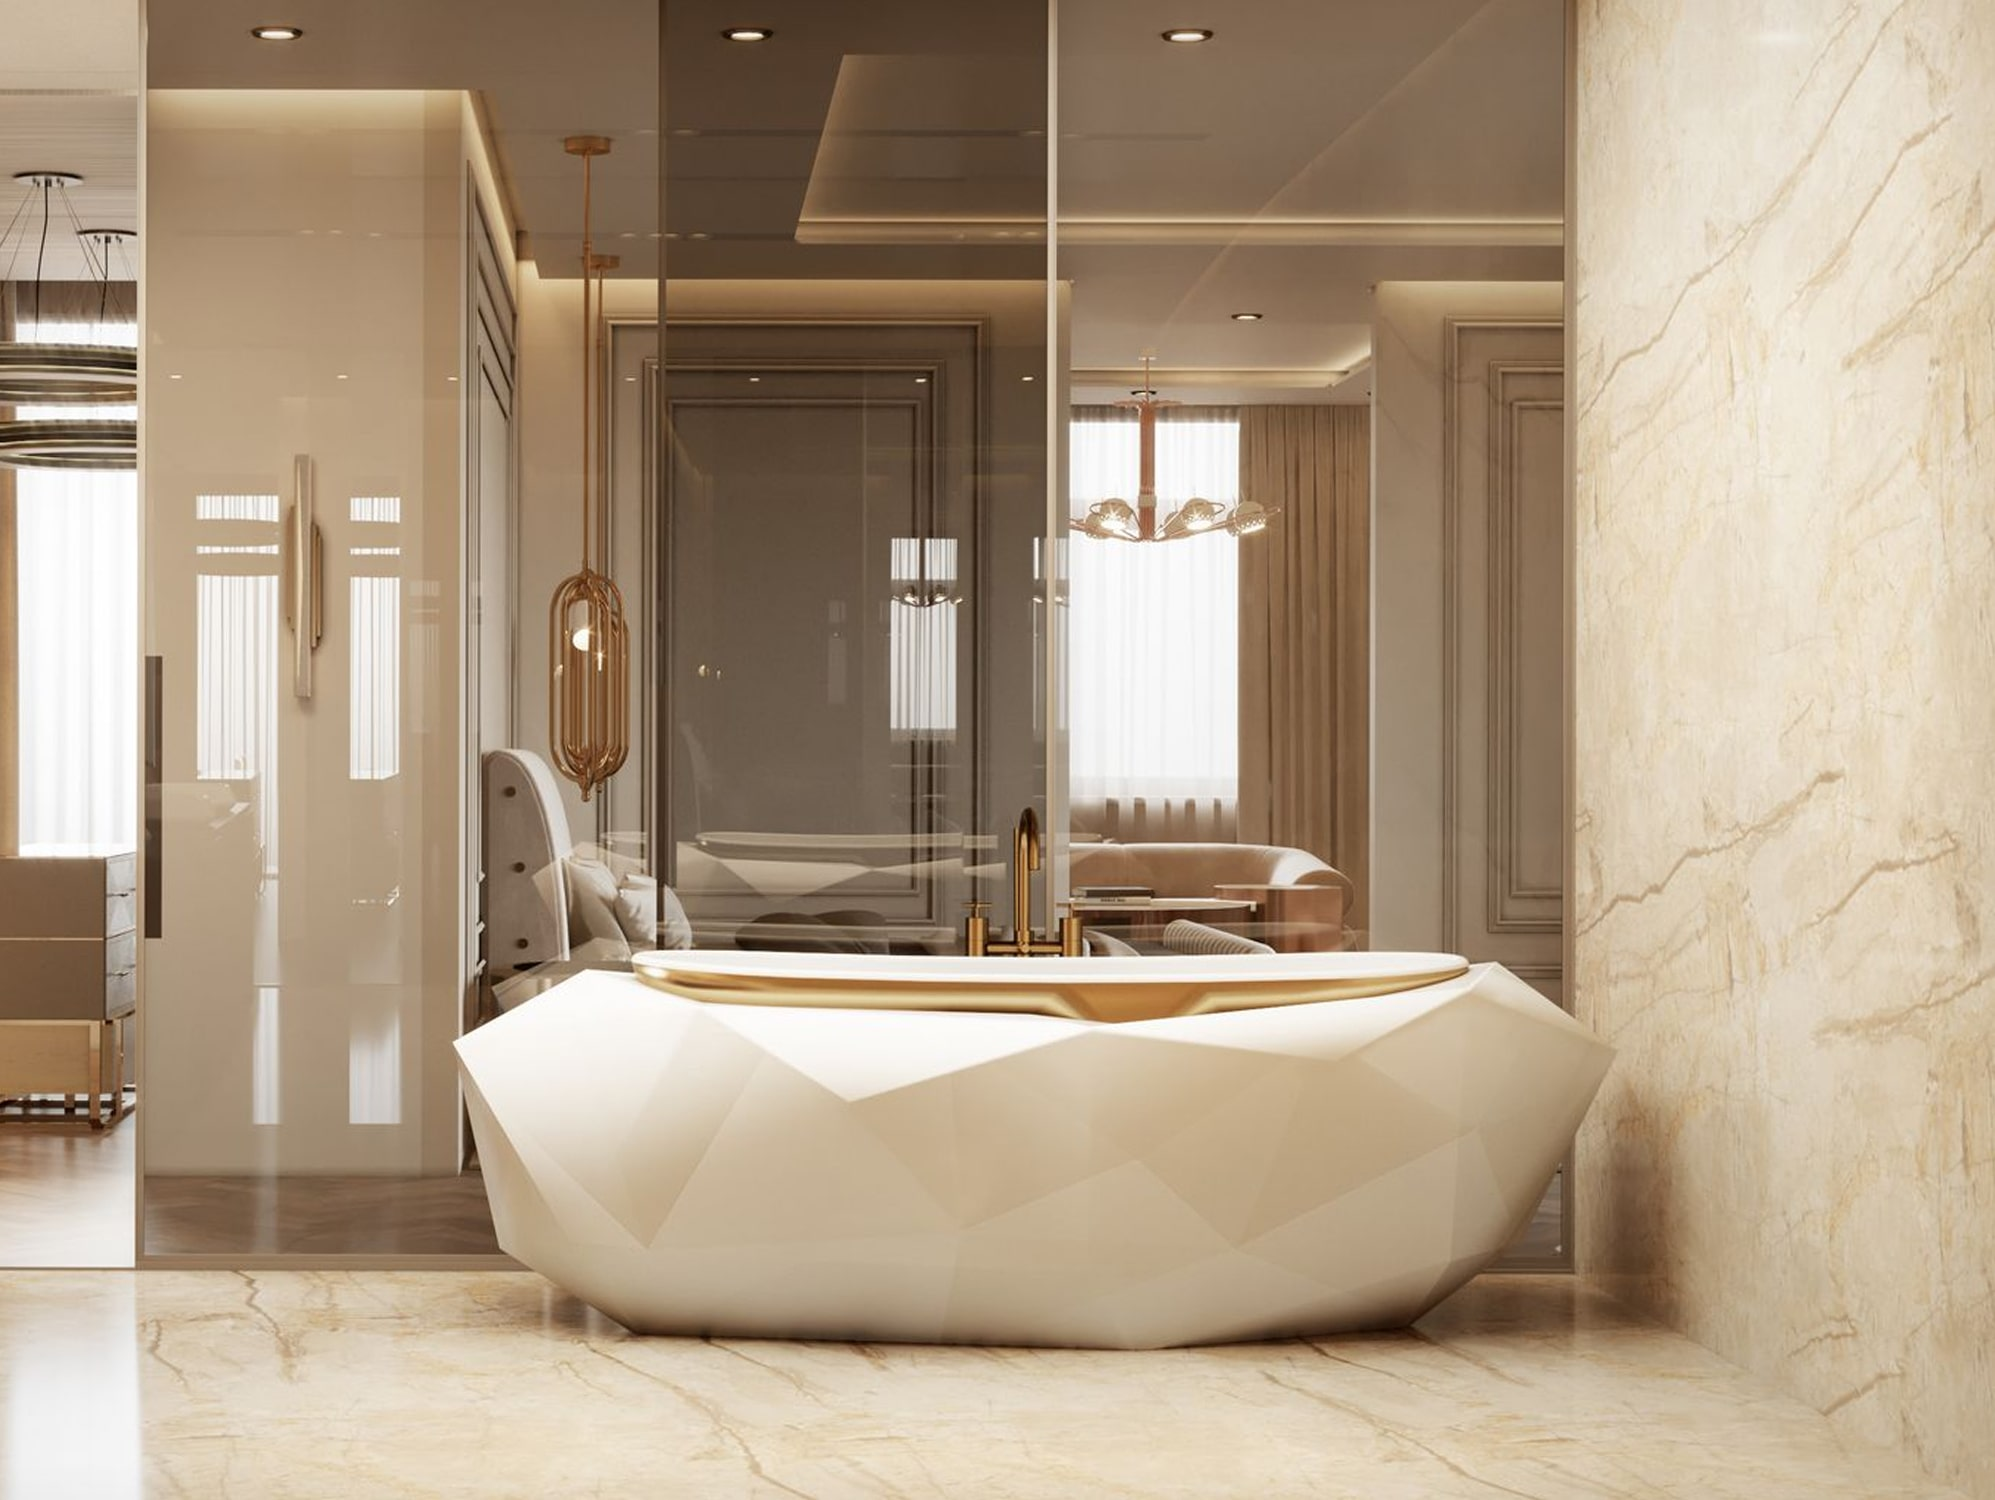 bathroom - AN EXCEPTIONAL CONTEMPORARY MODERN 16 MILLION PENTHOUSE IN MONACO